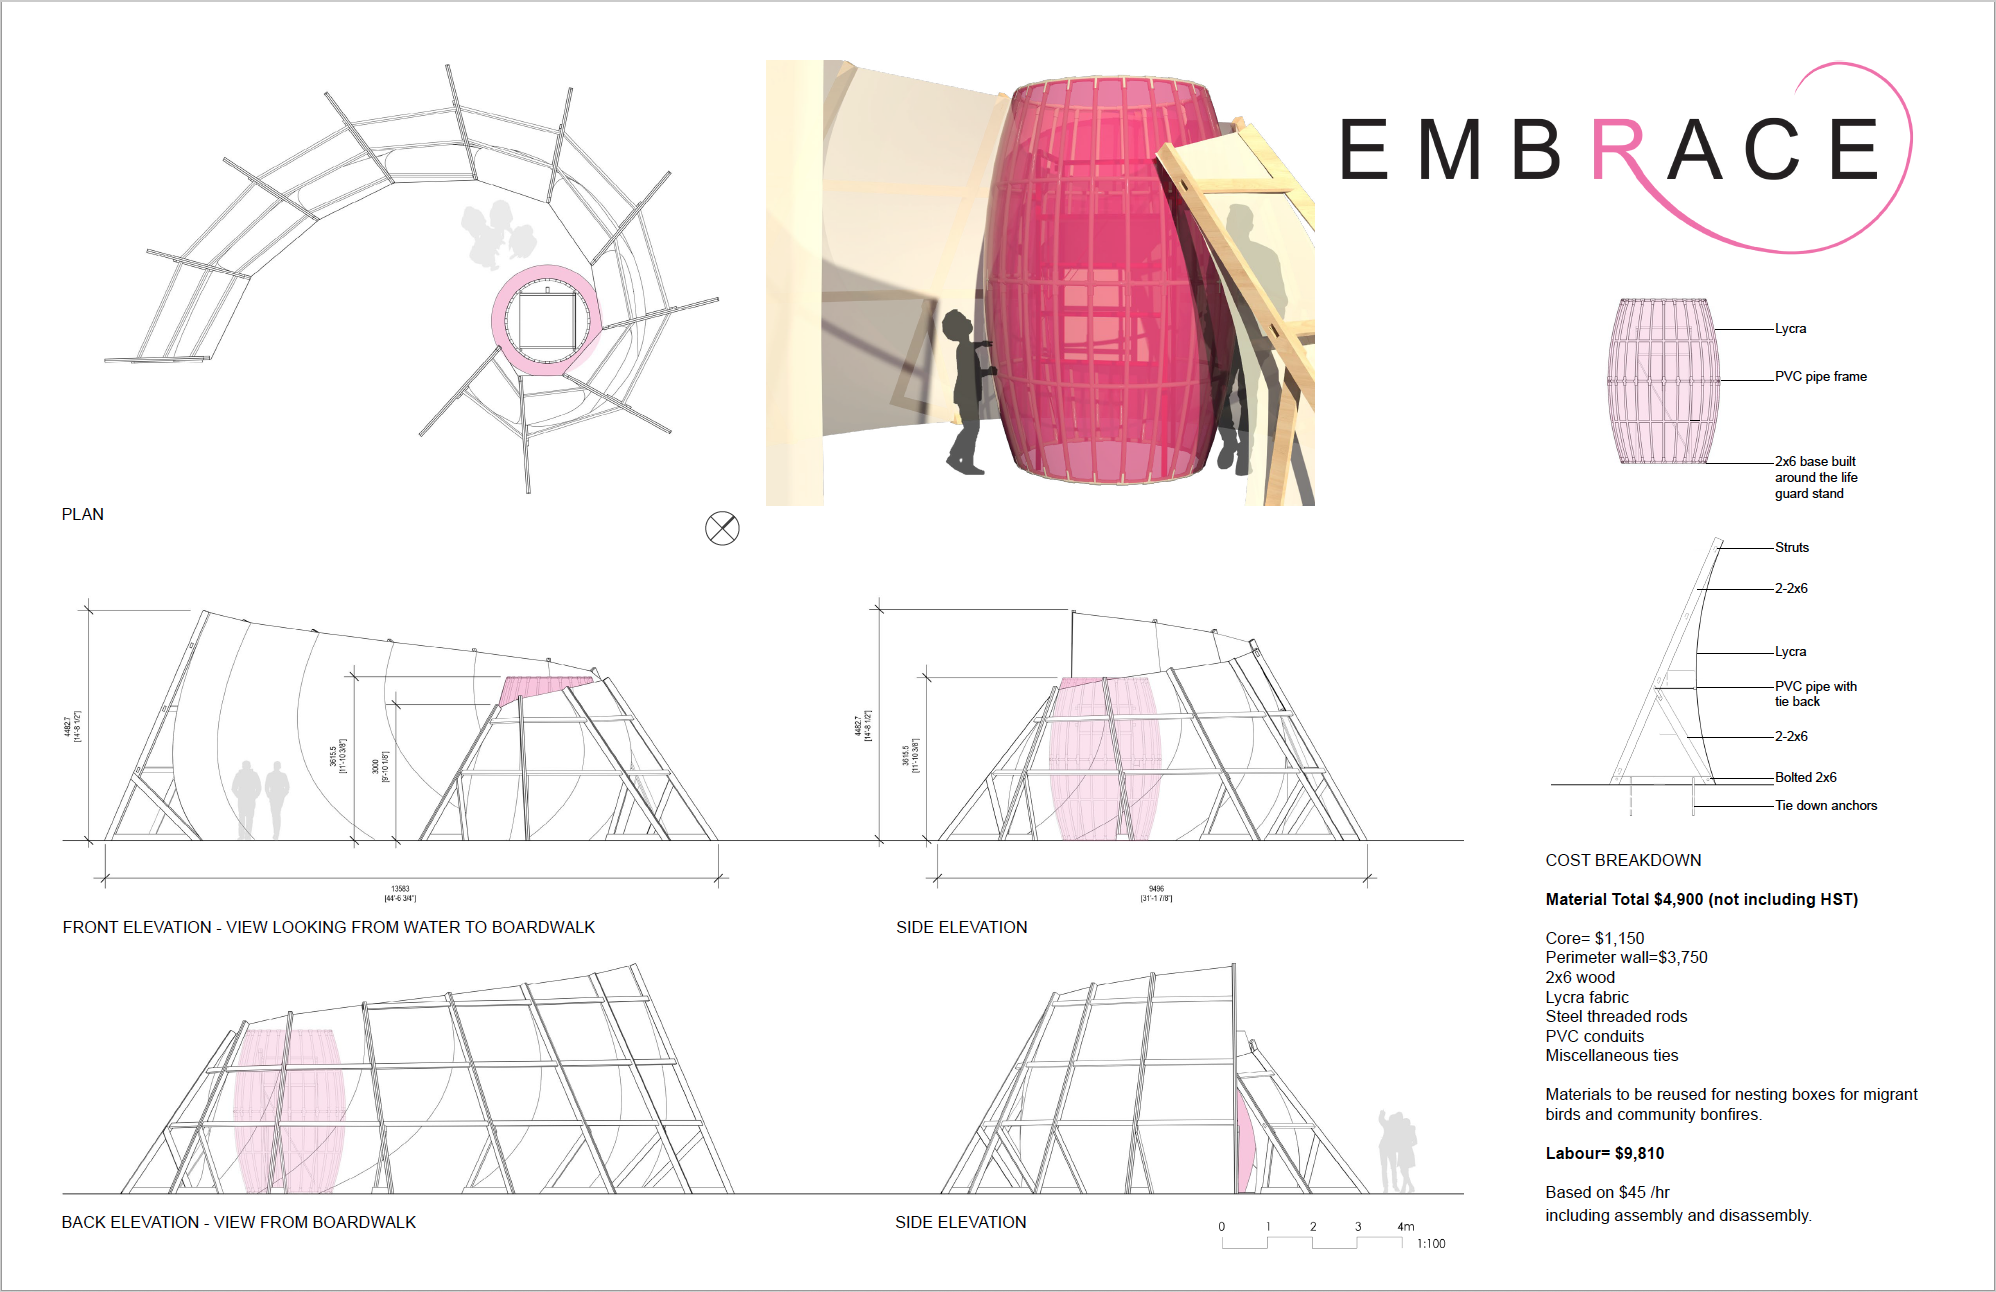 Robyn Huether Architect - embrace project - Embrace Drawing